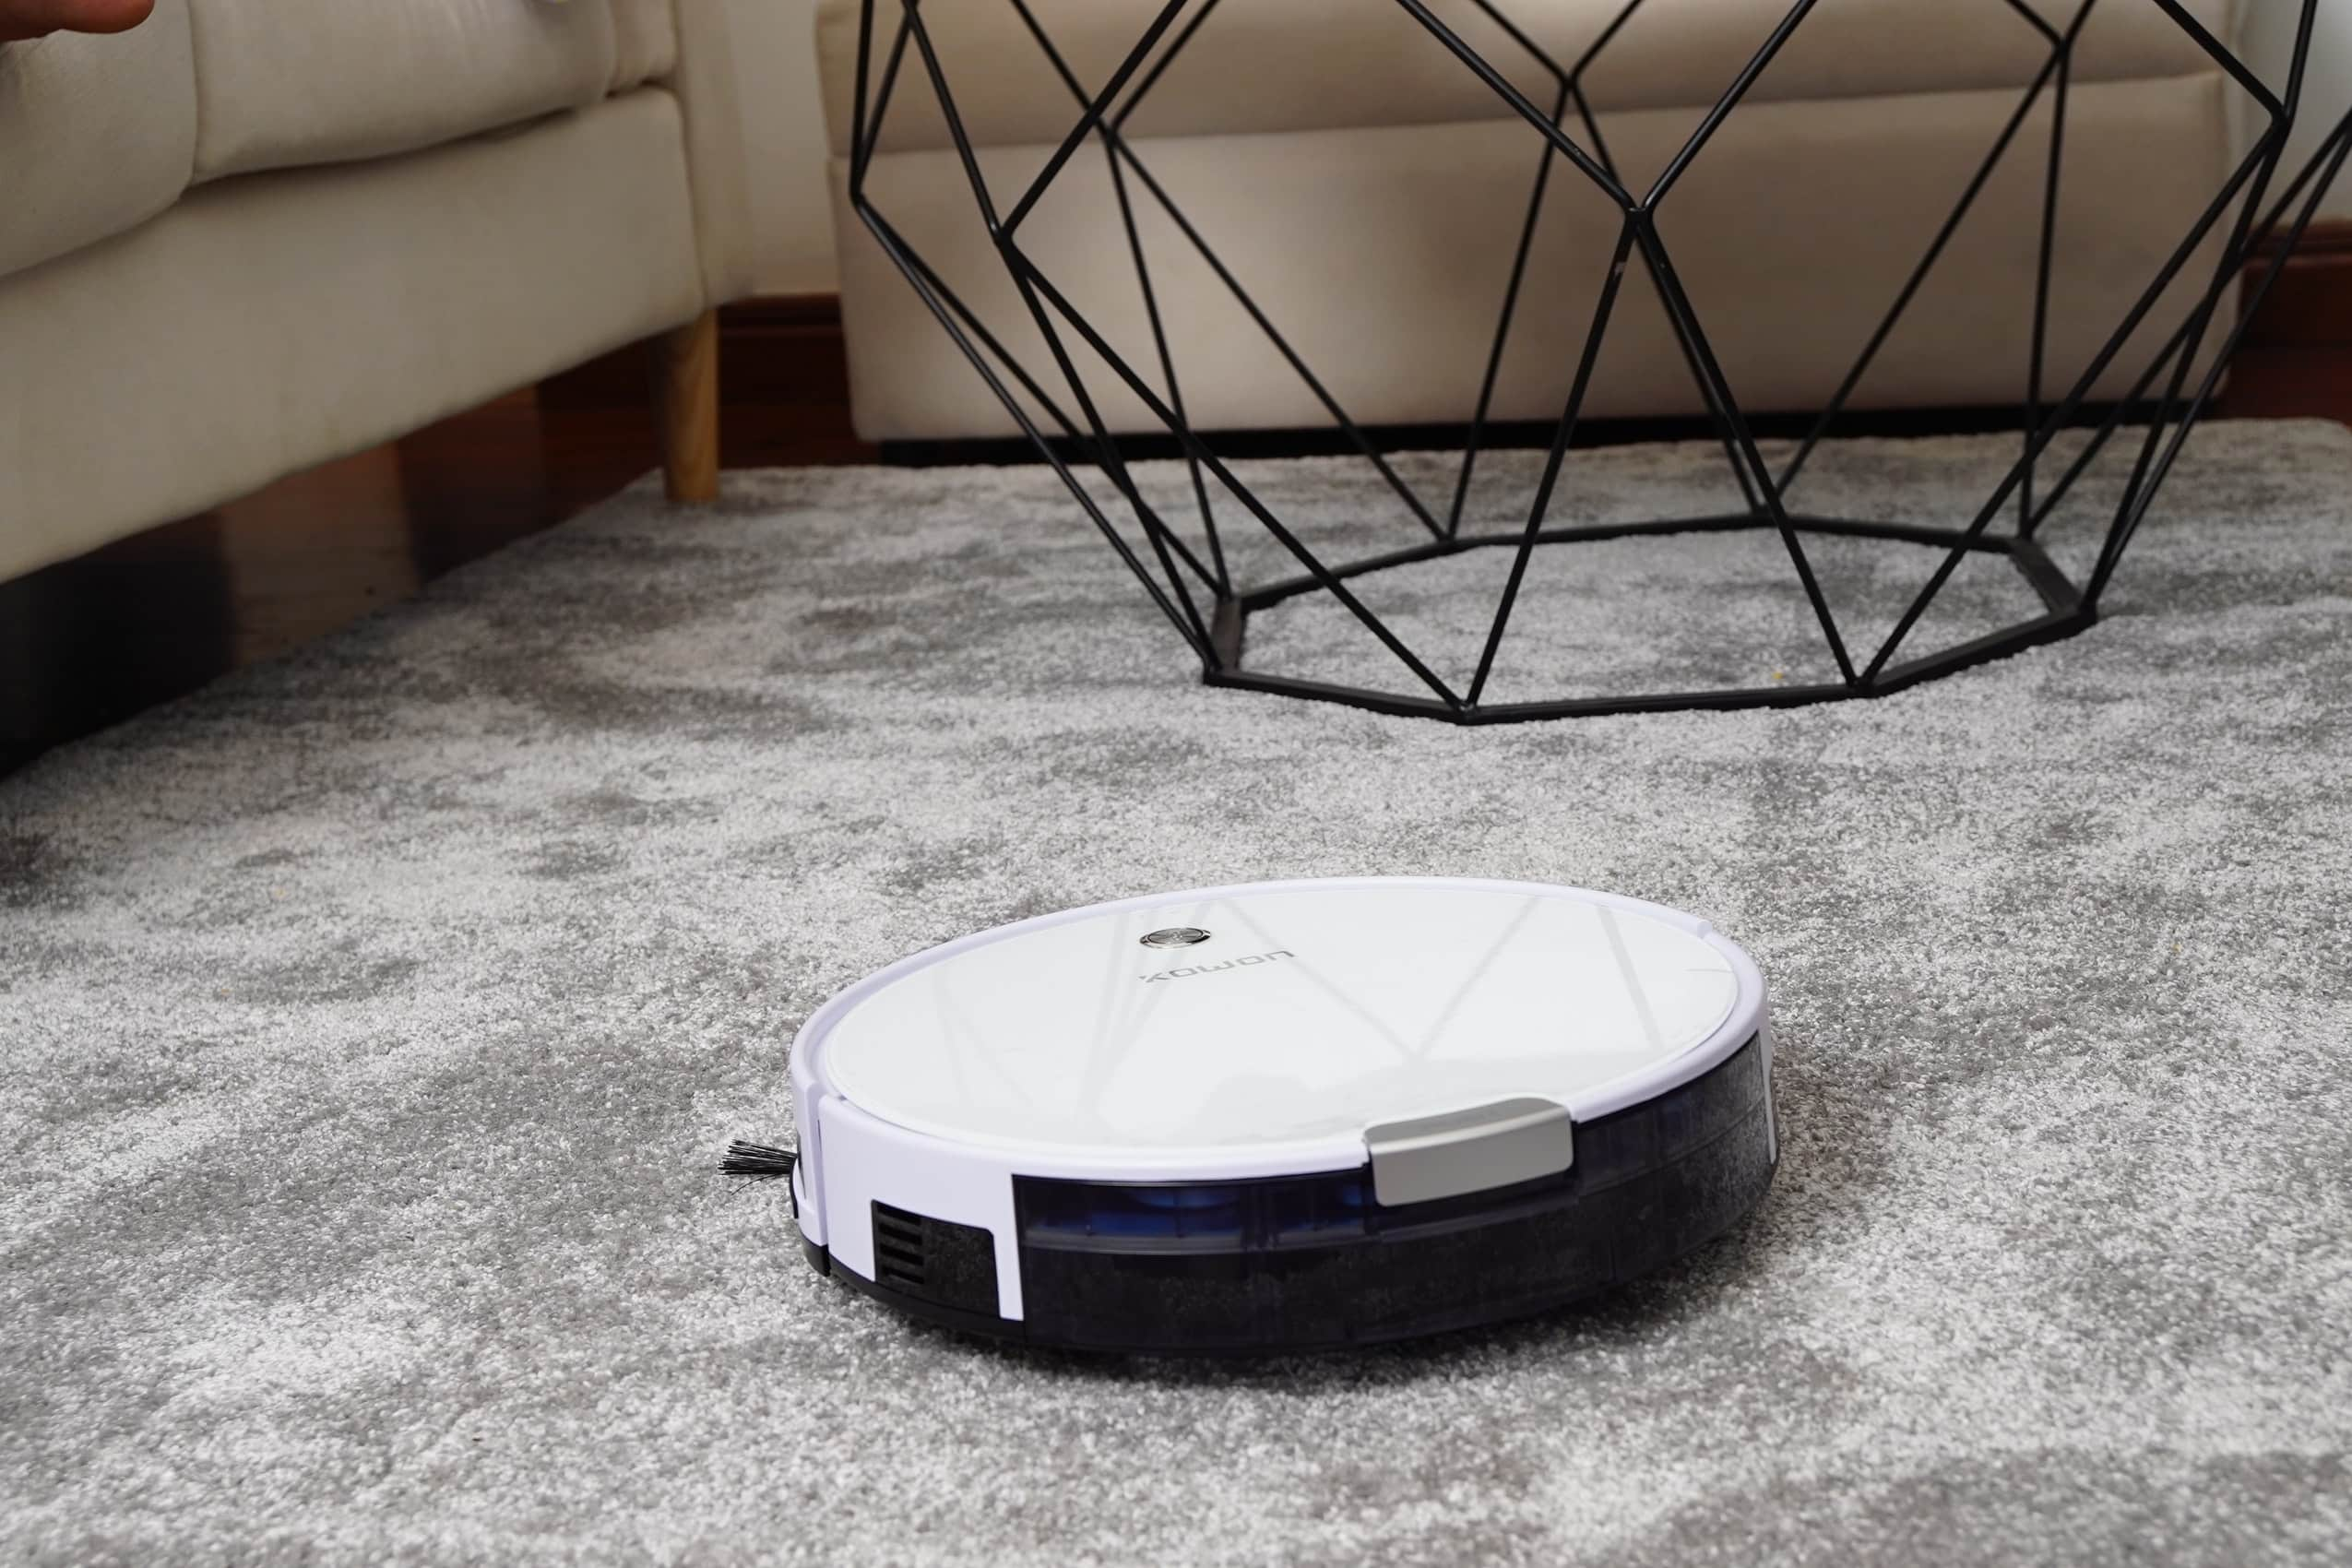 13 Best Robot Vacuums You Can Buy Under 200 In 2019